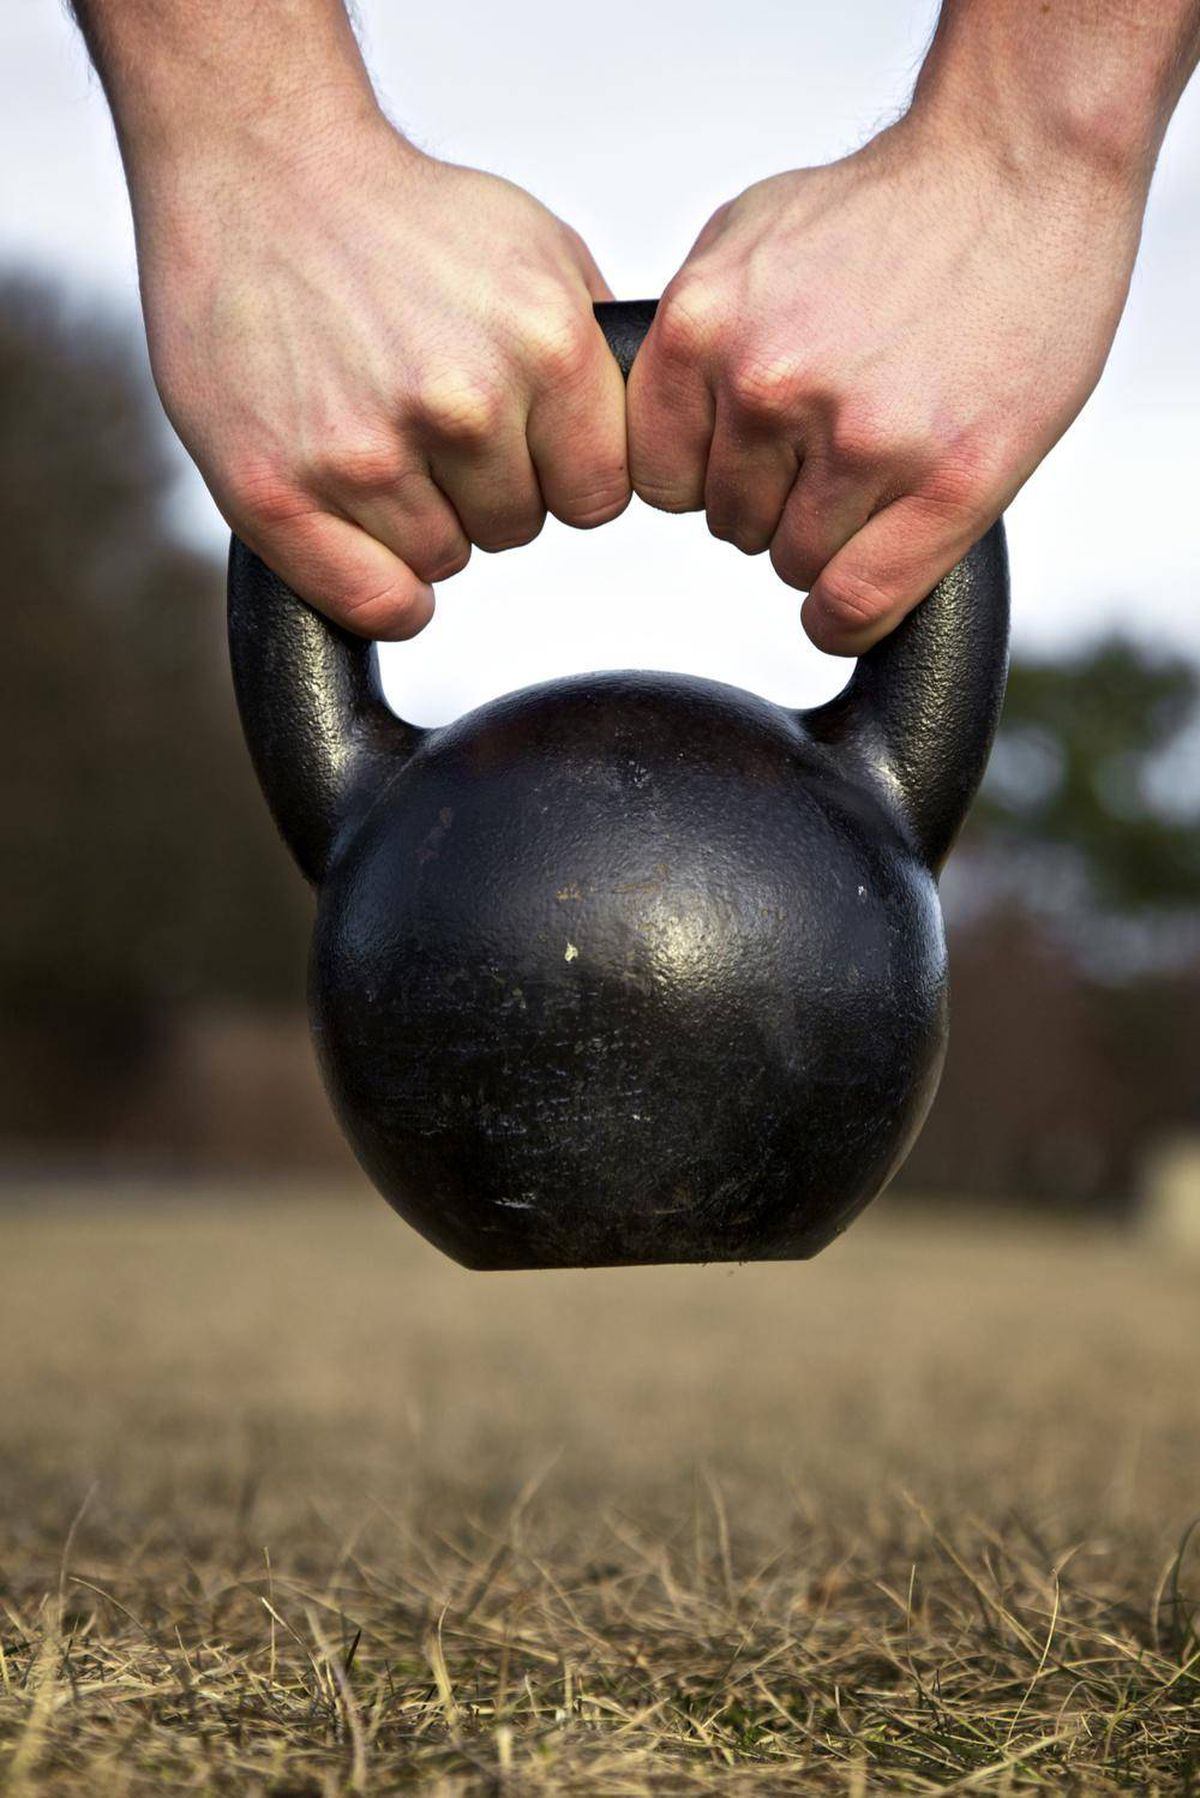 How effective are kettlebell workouts? - The Globe and Mail